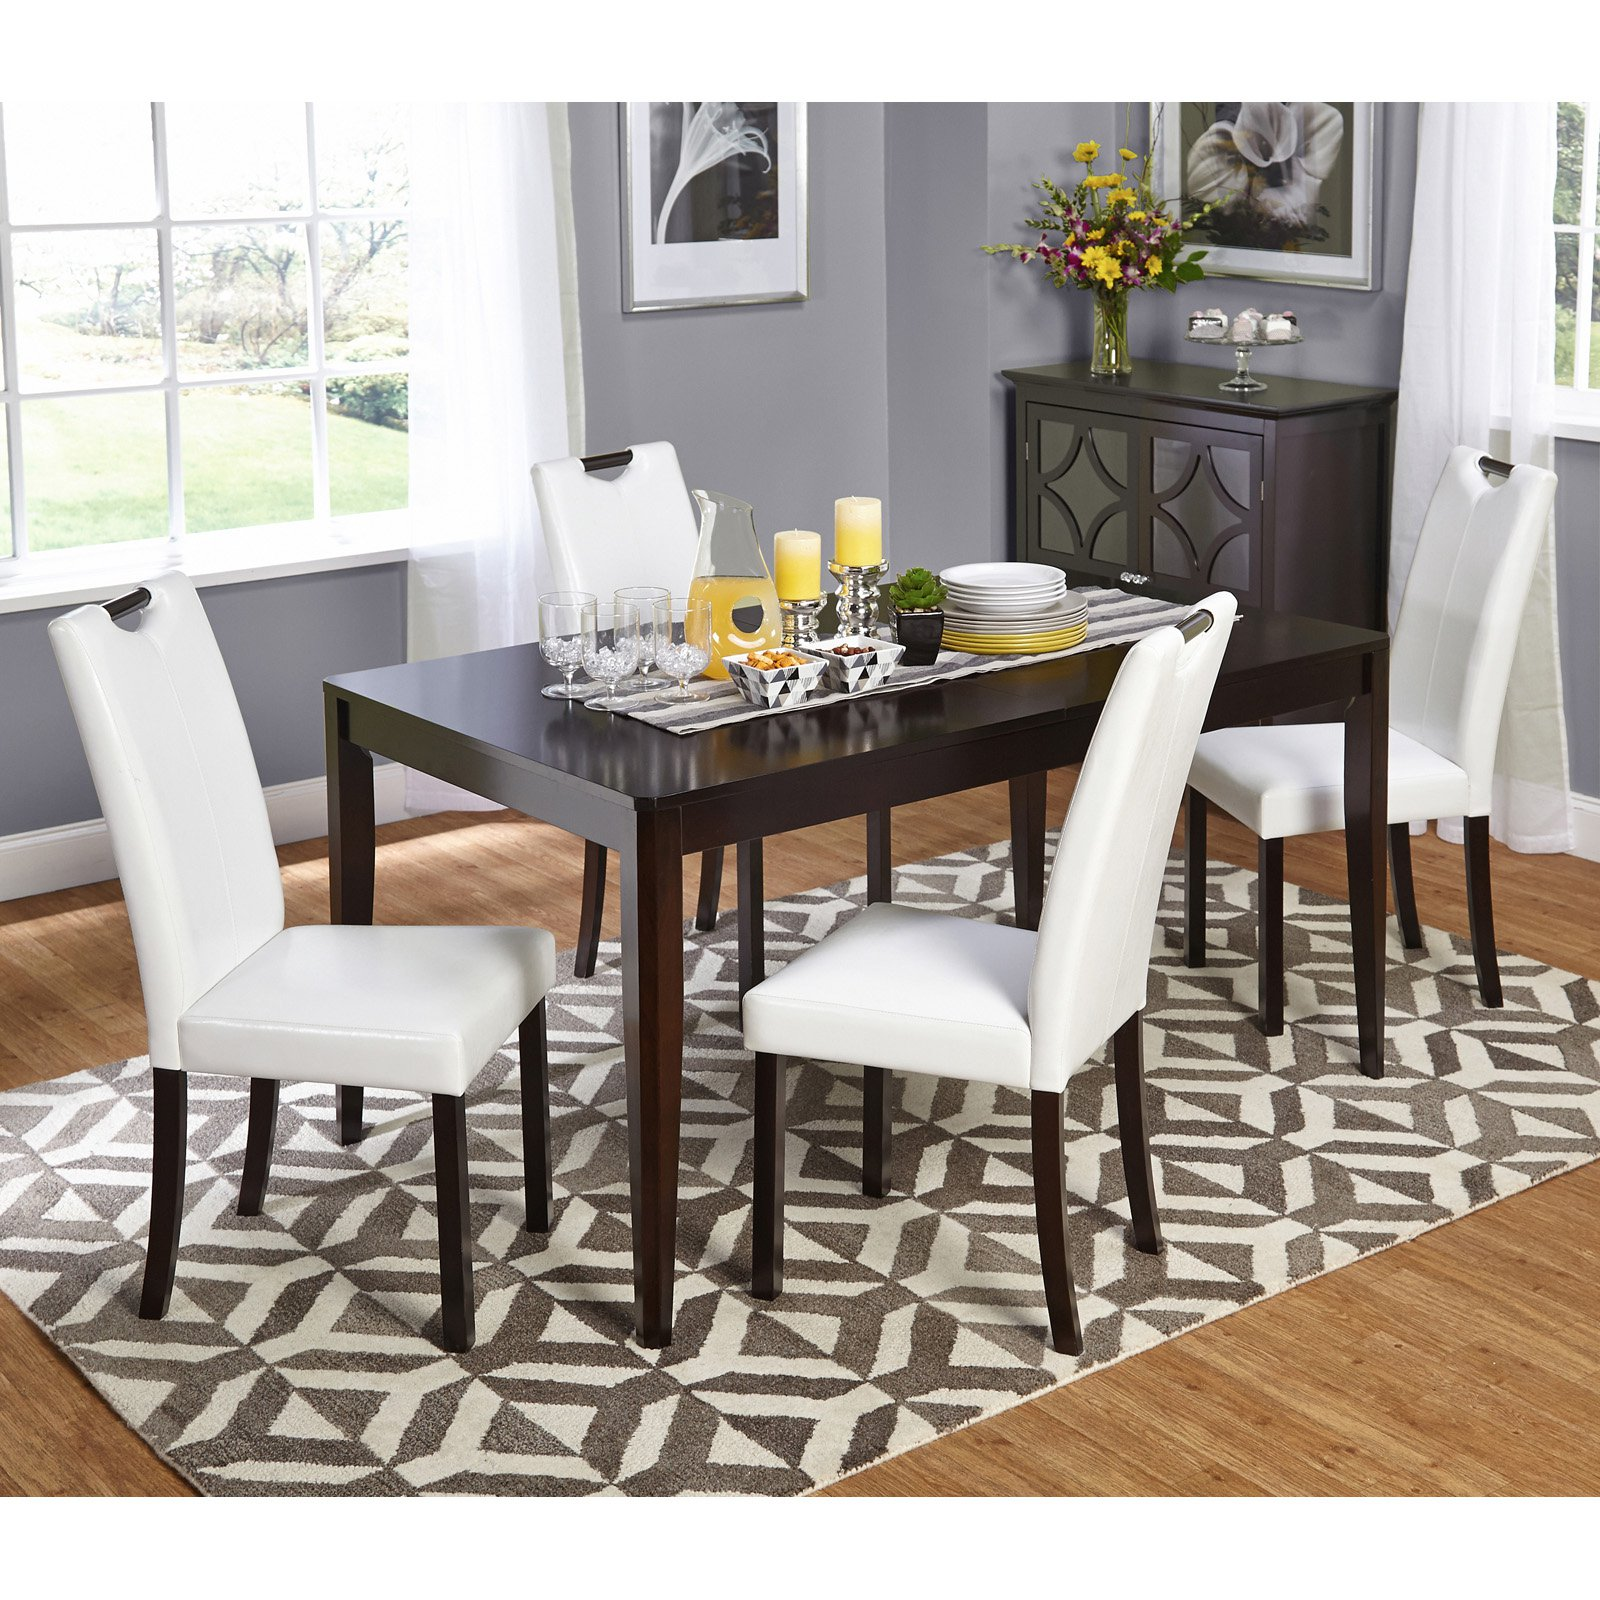 Target Marketing Systems Tilo 5 Piece Dining Table Set